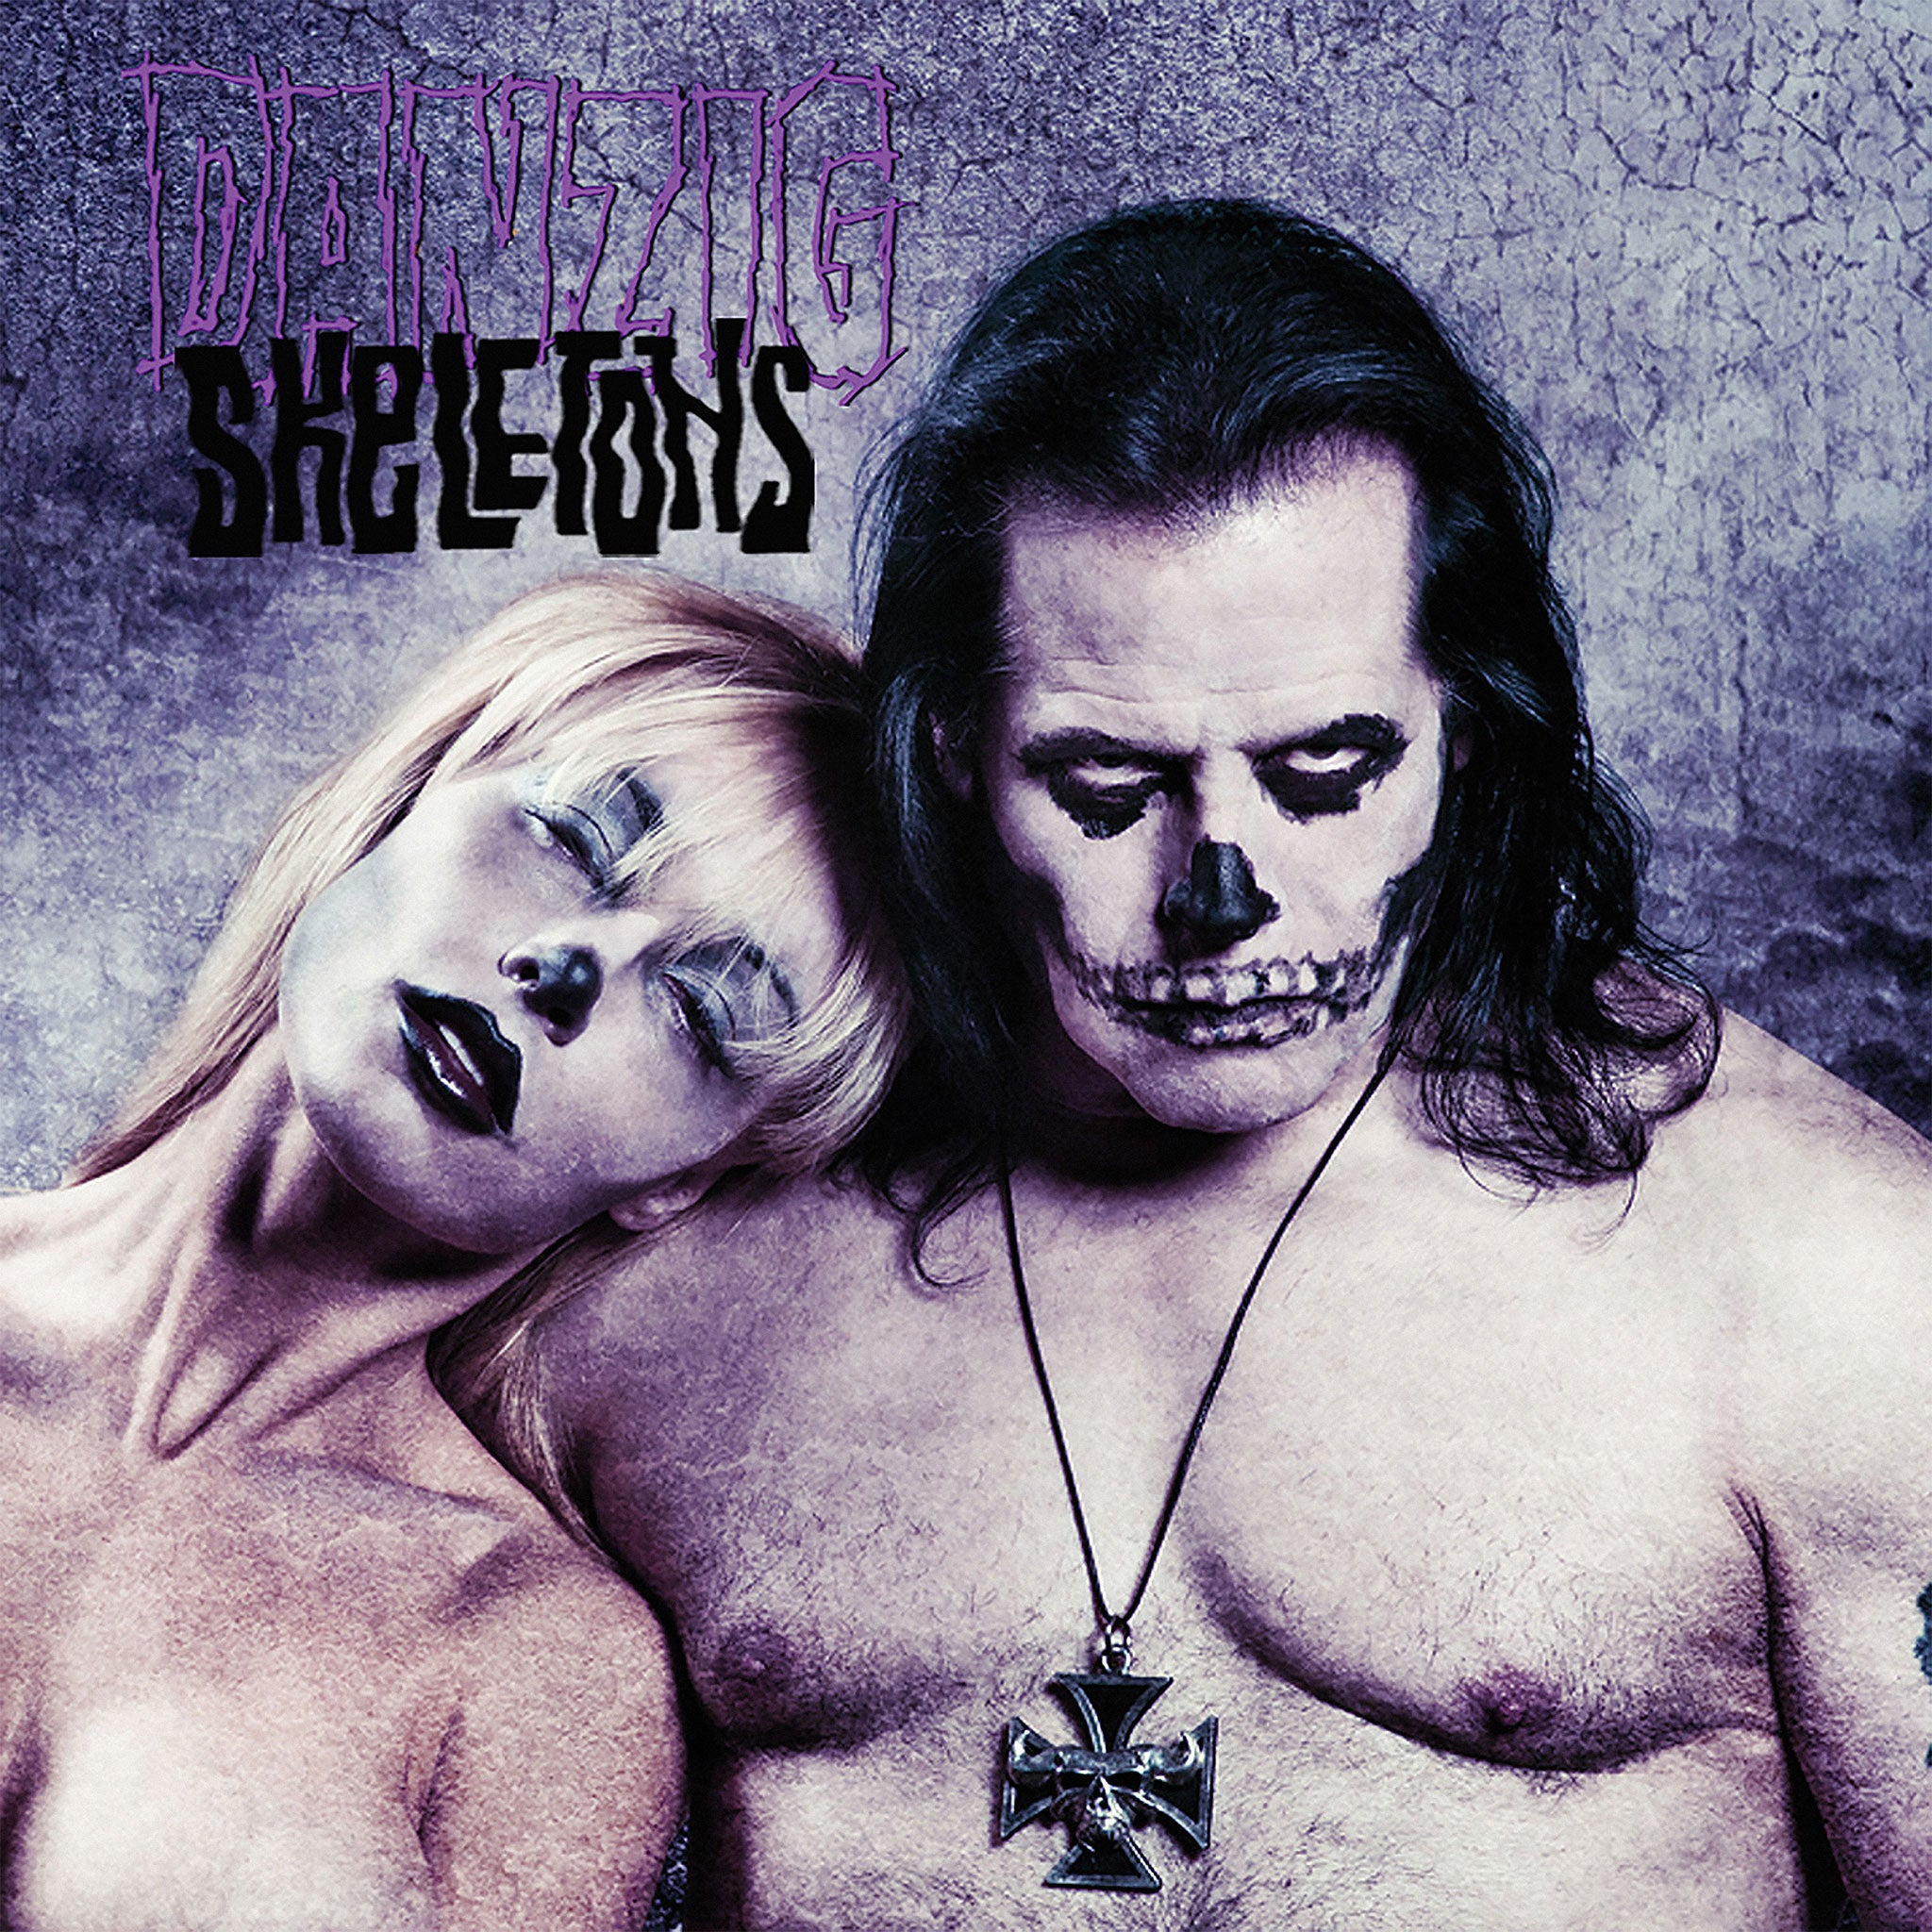 Danzig - Skeletons (Digipak CD)